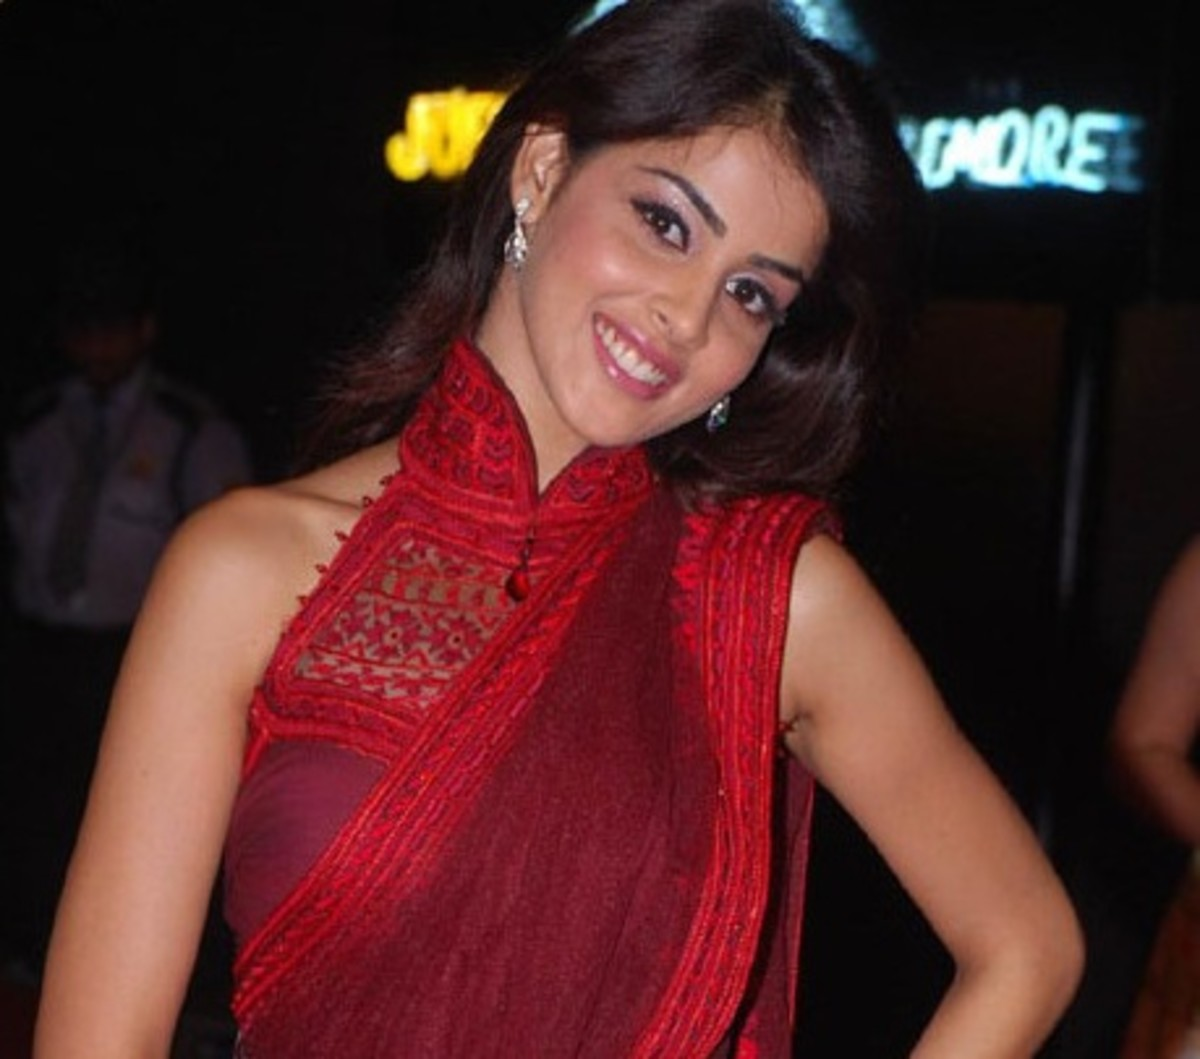 Genelia looking very classy in redish maroon saree with high neck collared blouse and slanted sleeveless designed saree blouse